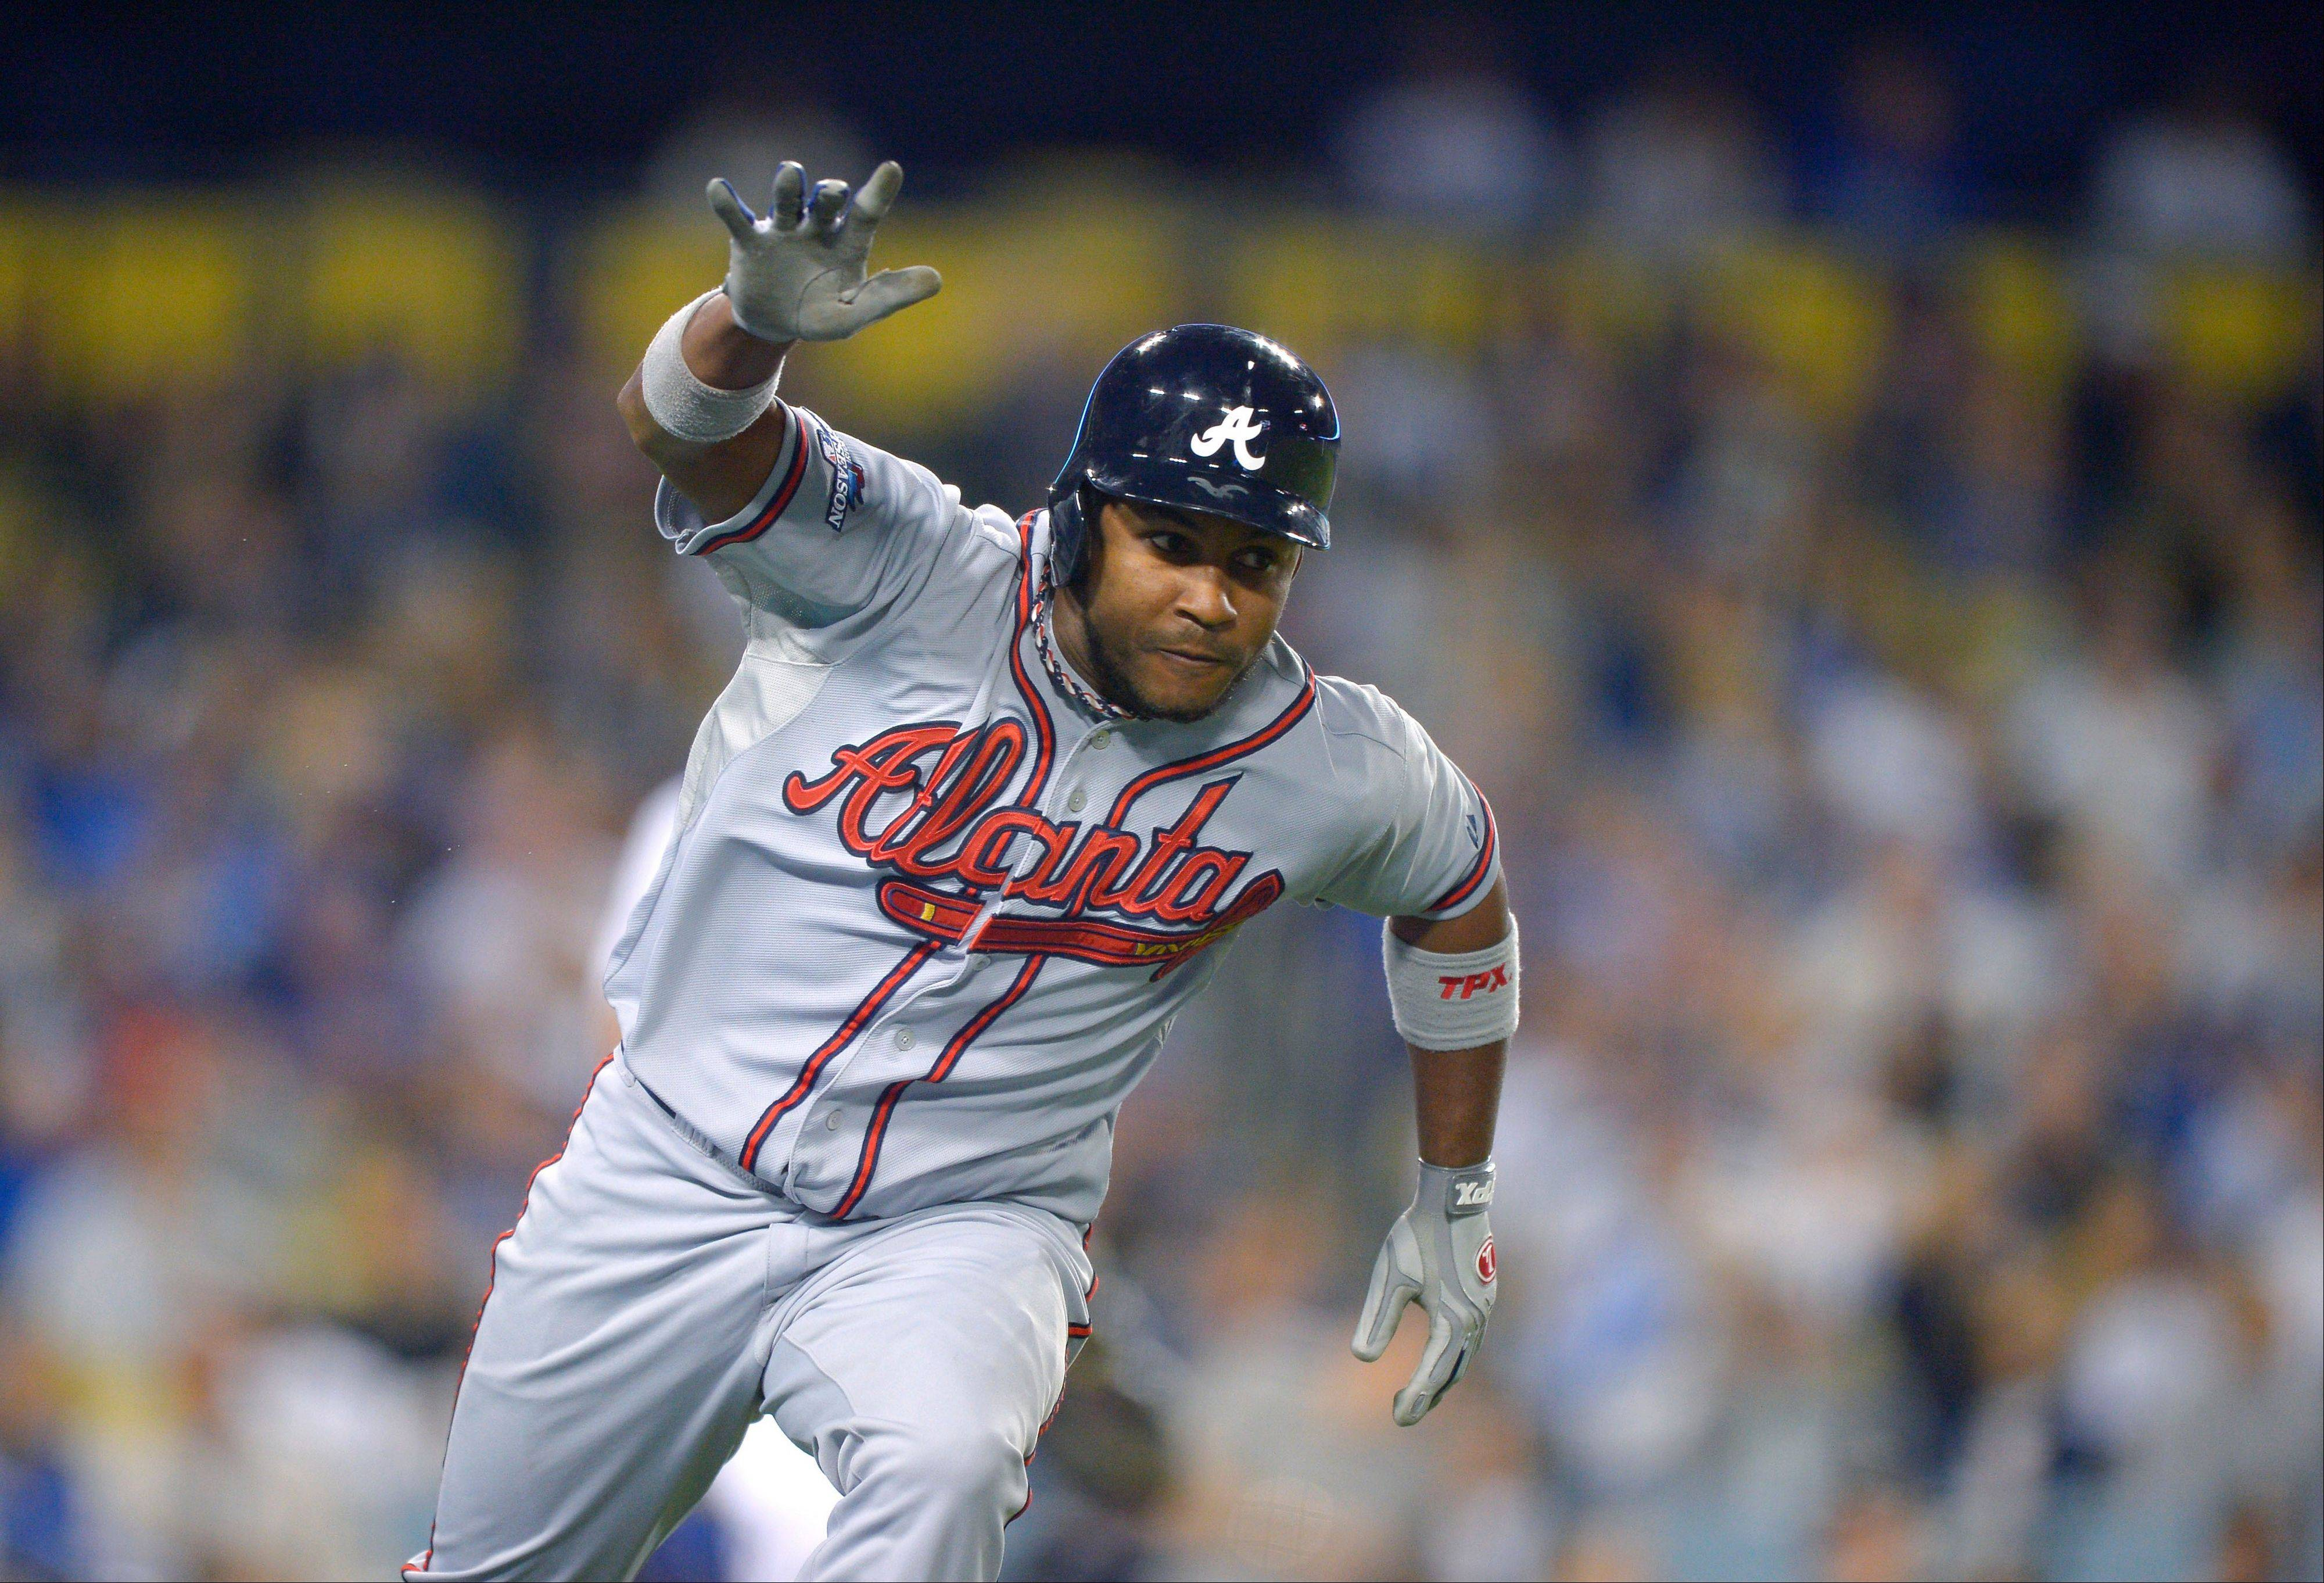 The Braves' Jose Costanza runs to first after hitting a single to score Elliot Johnson in the seventh inning of Game 4 on Monday in Los Angeles.